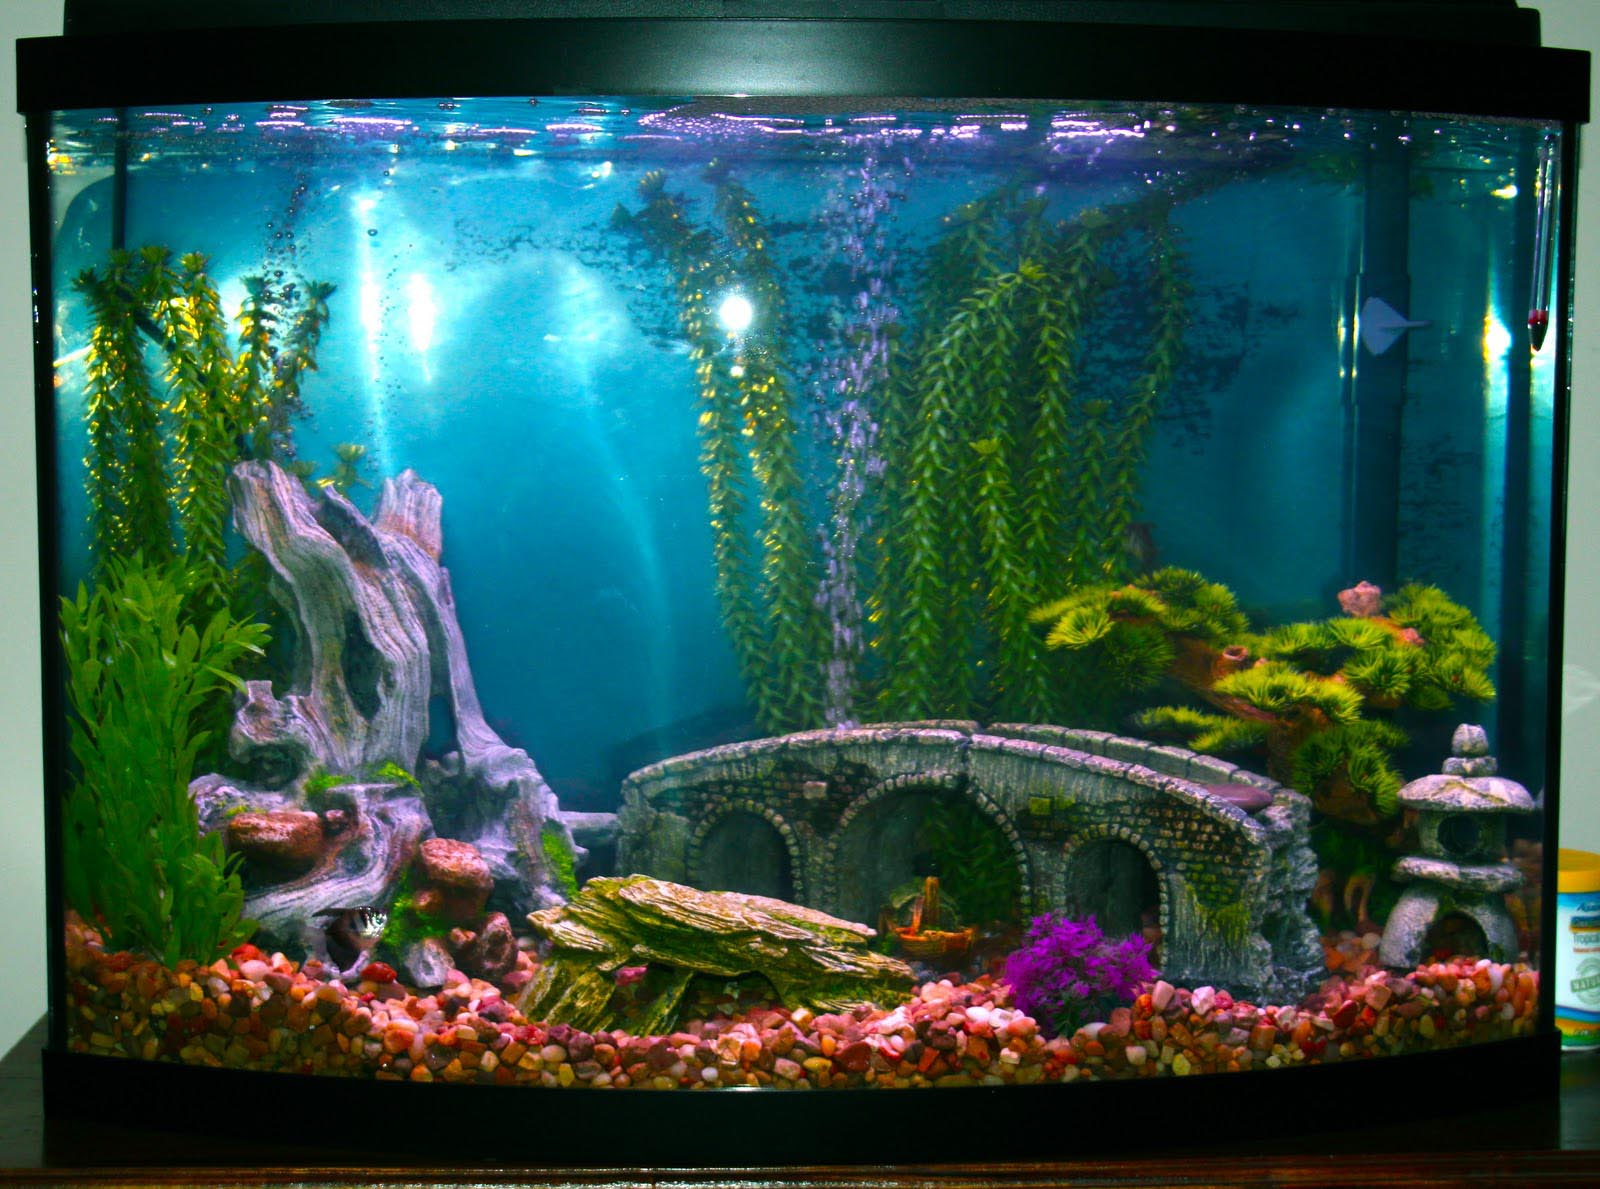 decor for fish tanks aquarium aquarium design ideas home accessories cool aquarium decorations aquarium